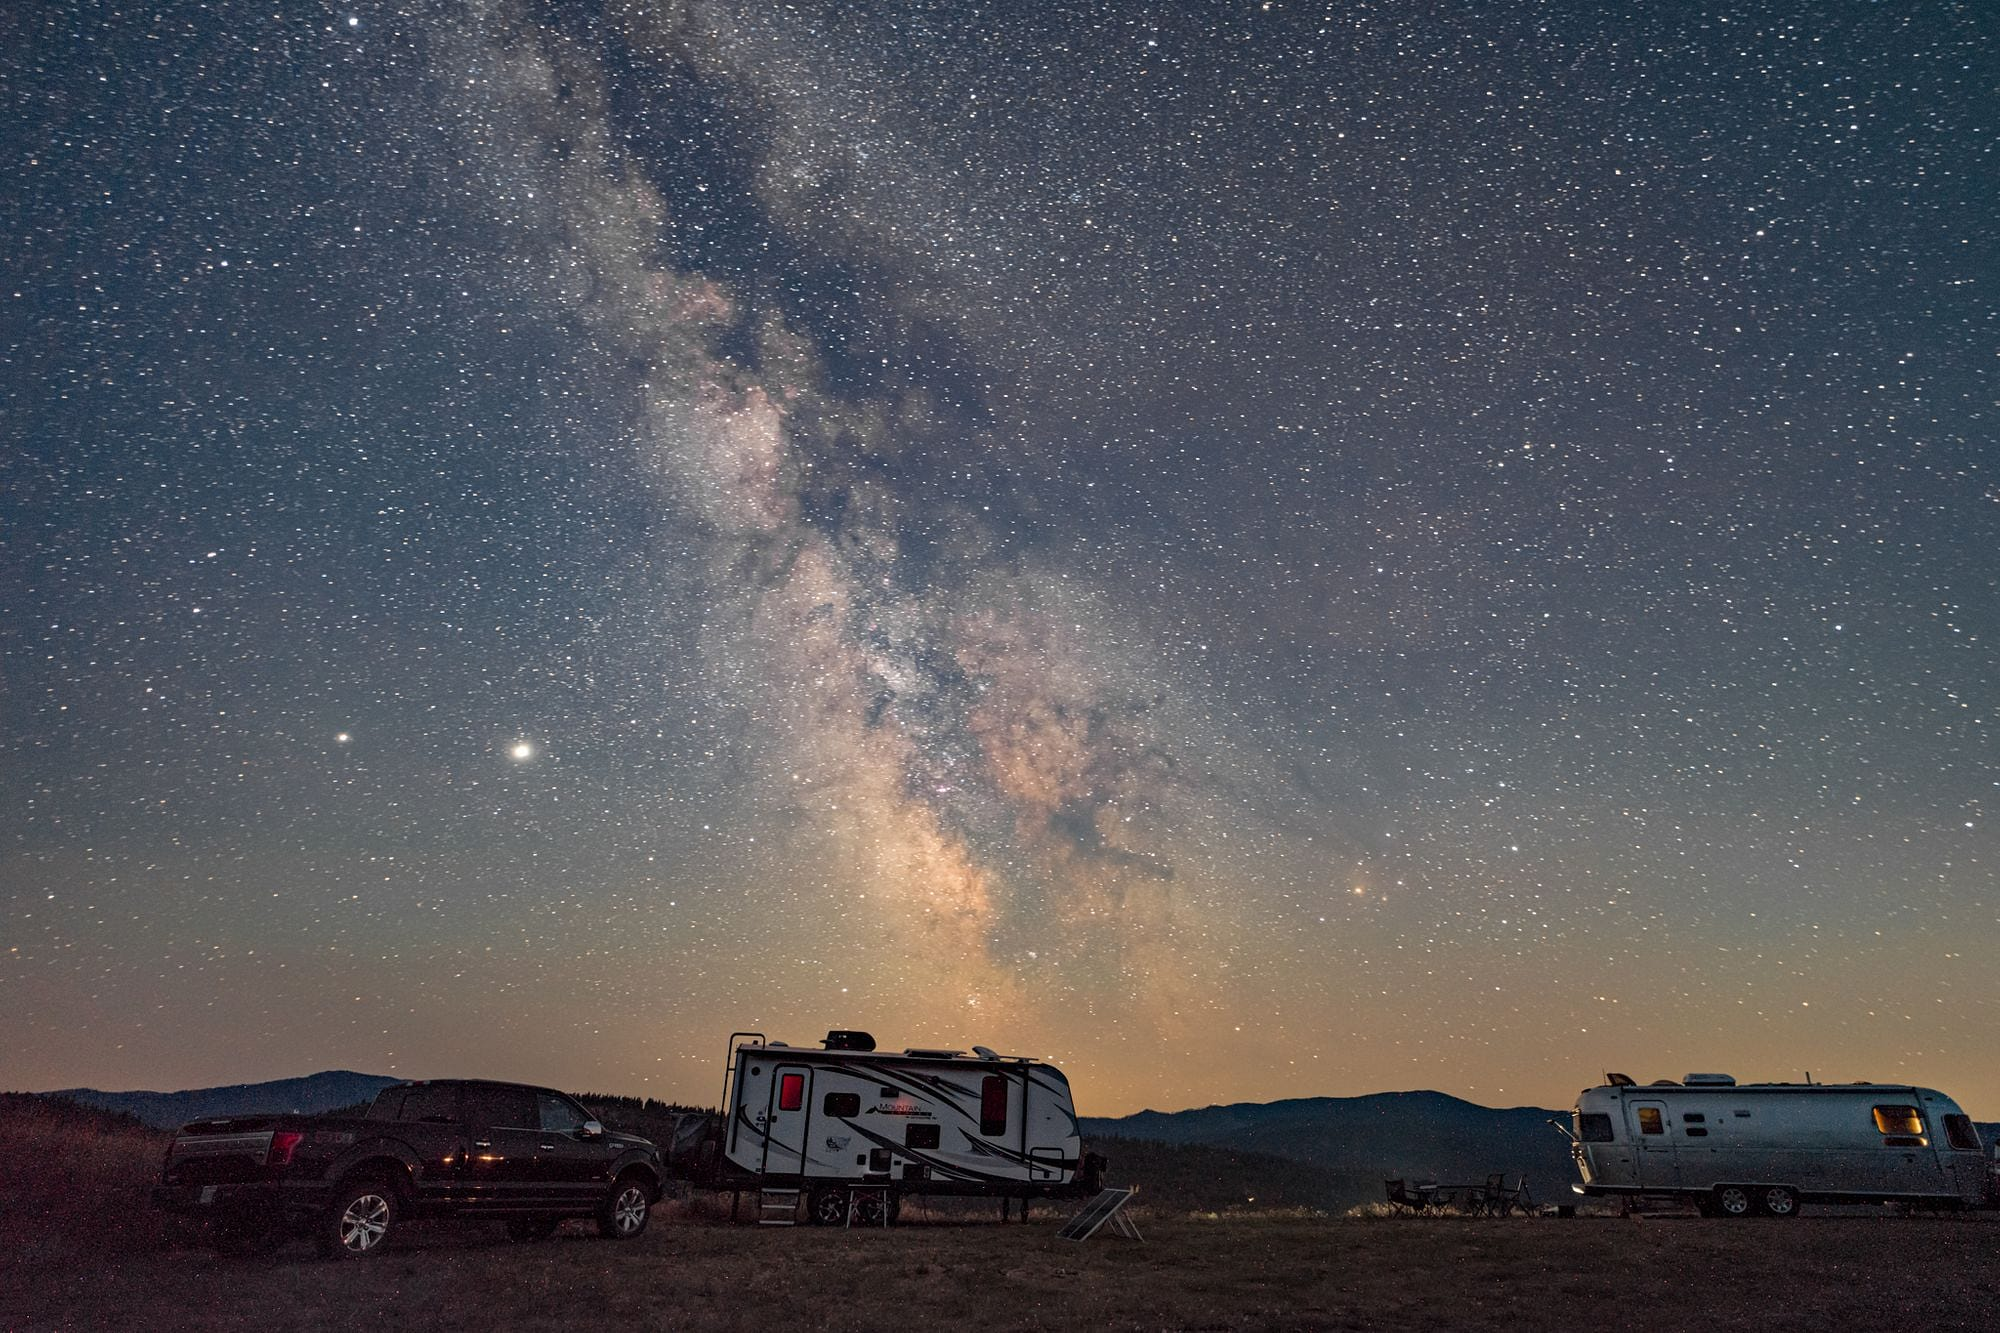 Milky Way Outdoors RV